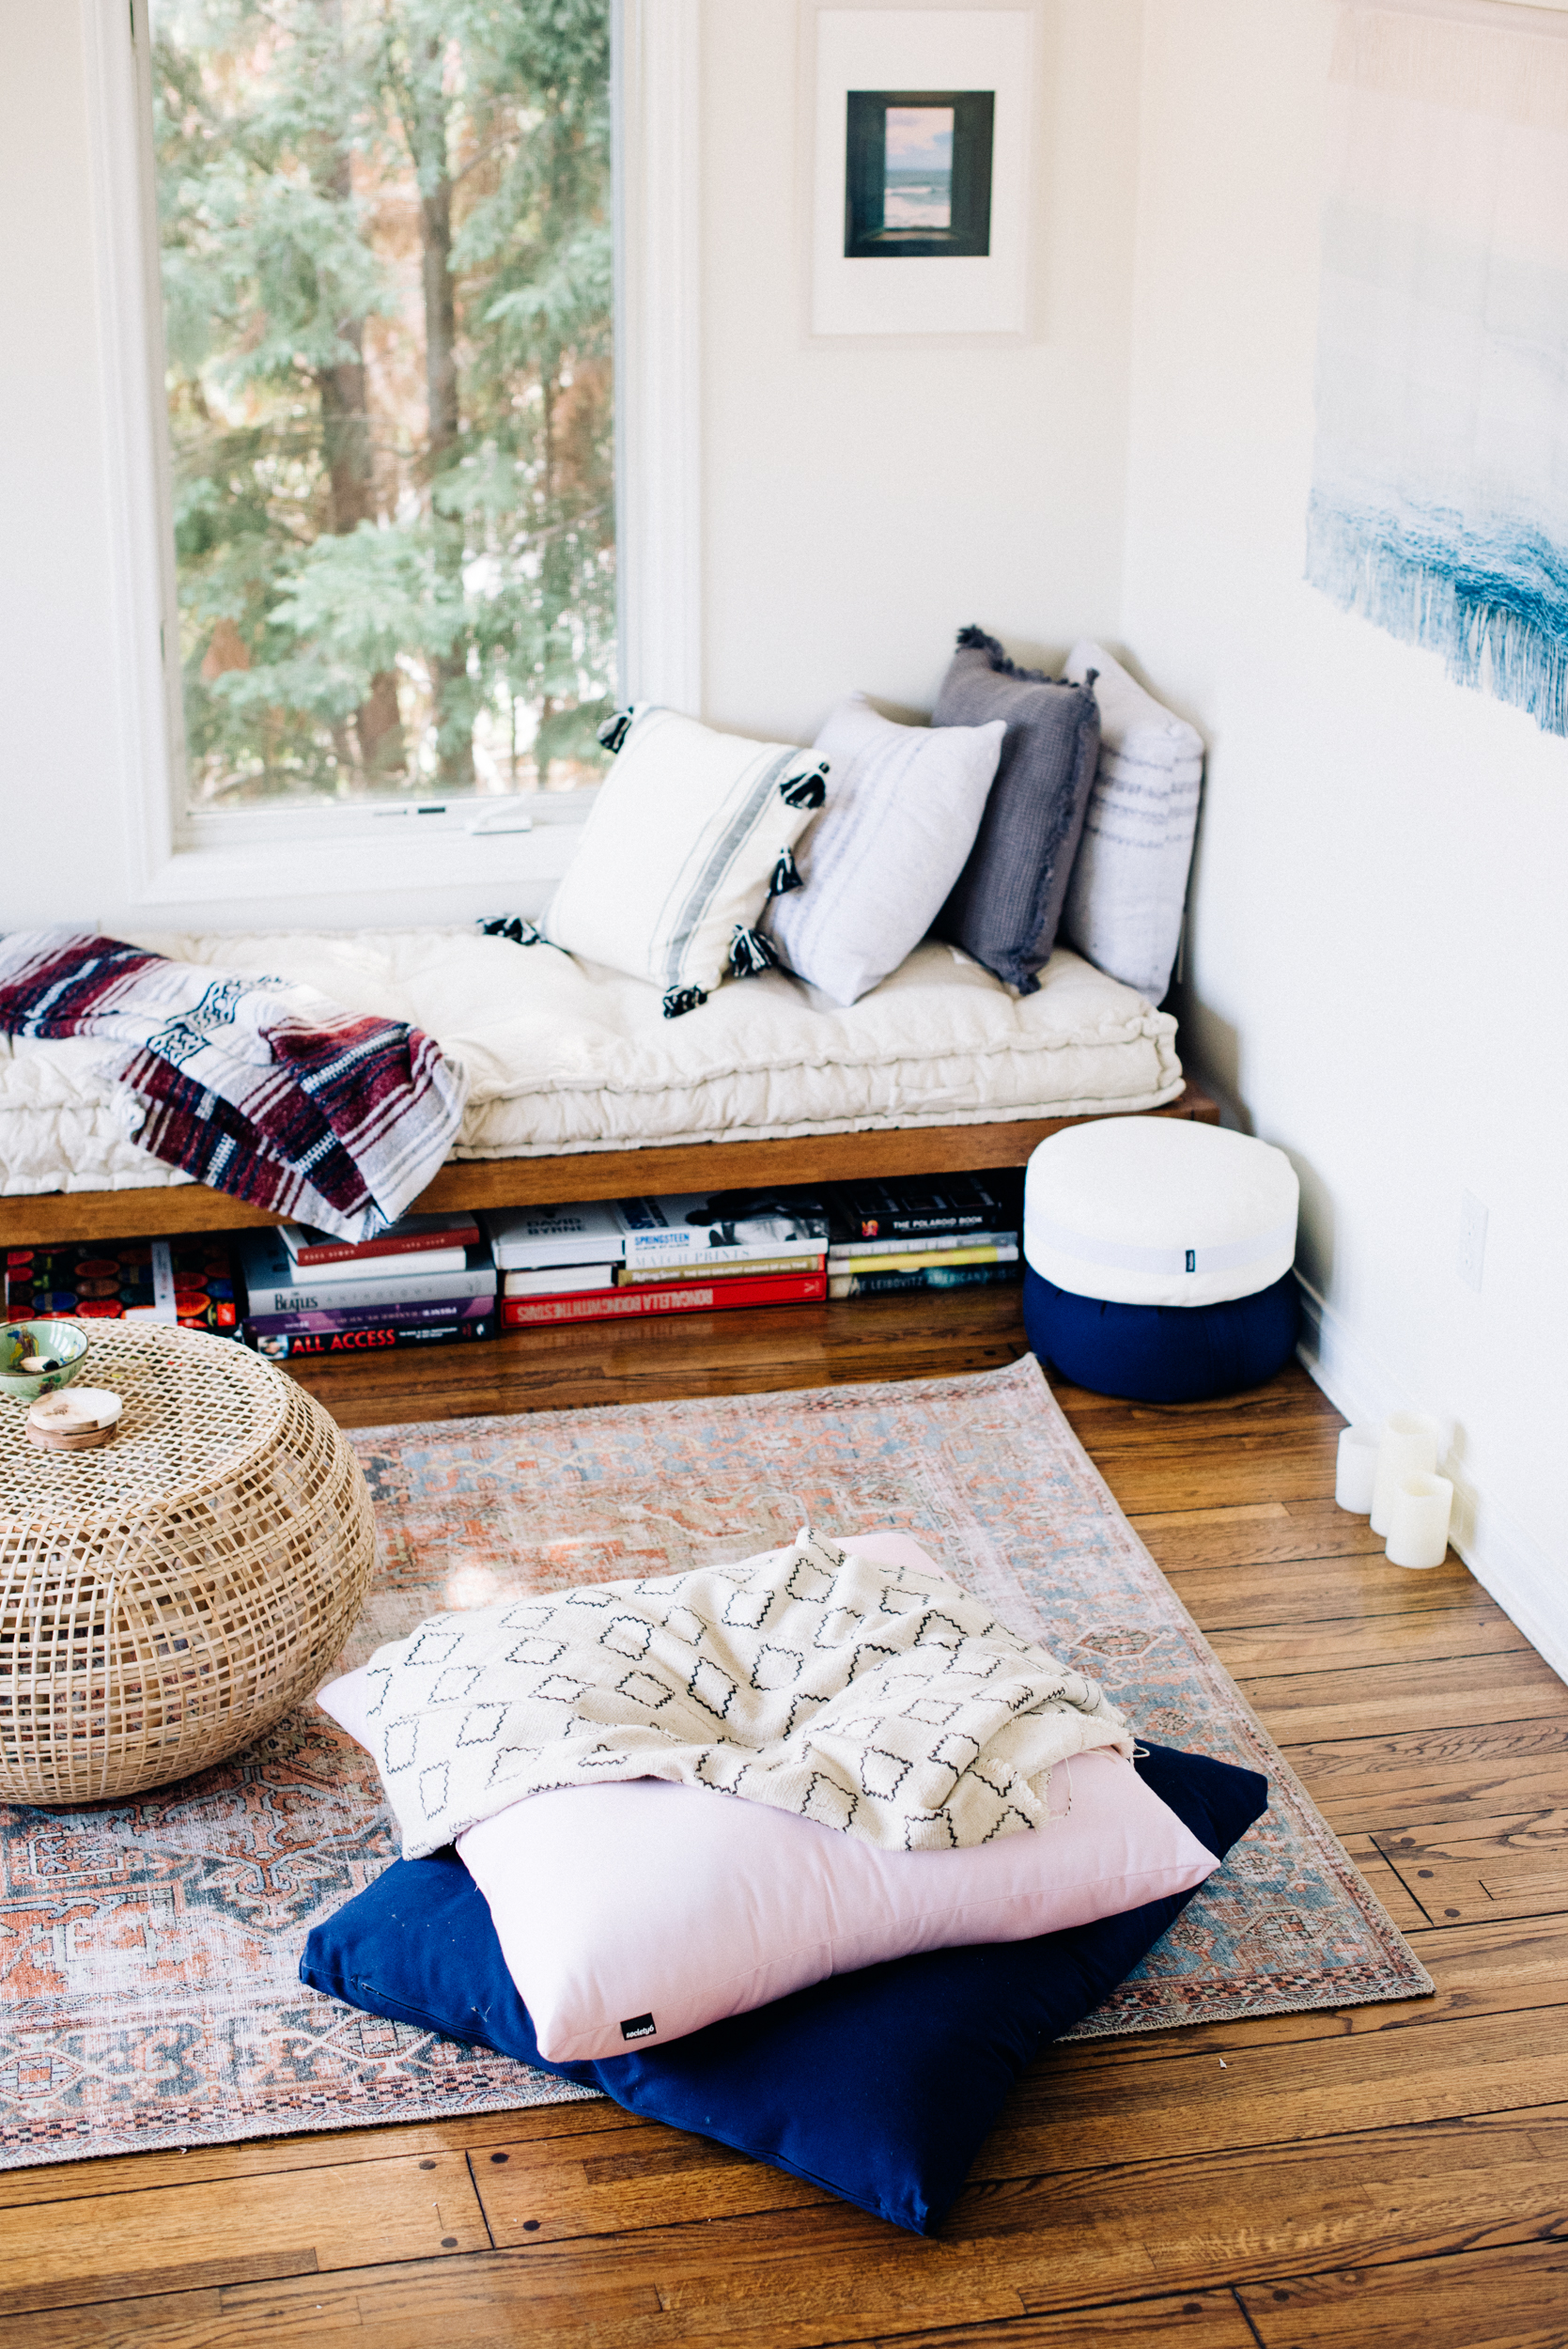 Hopper Daybed, Rohini Daybed Cushion, Marte Ottoman, Hannah Printed Rug, Ivy Fringe Striped Throw Pillow: Urban Outfitters Home  White and Grey Meditation Cushion: Walden  Wall art, macramé and pink floor cushion: Society 6